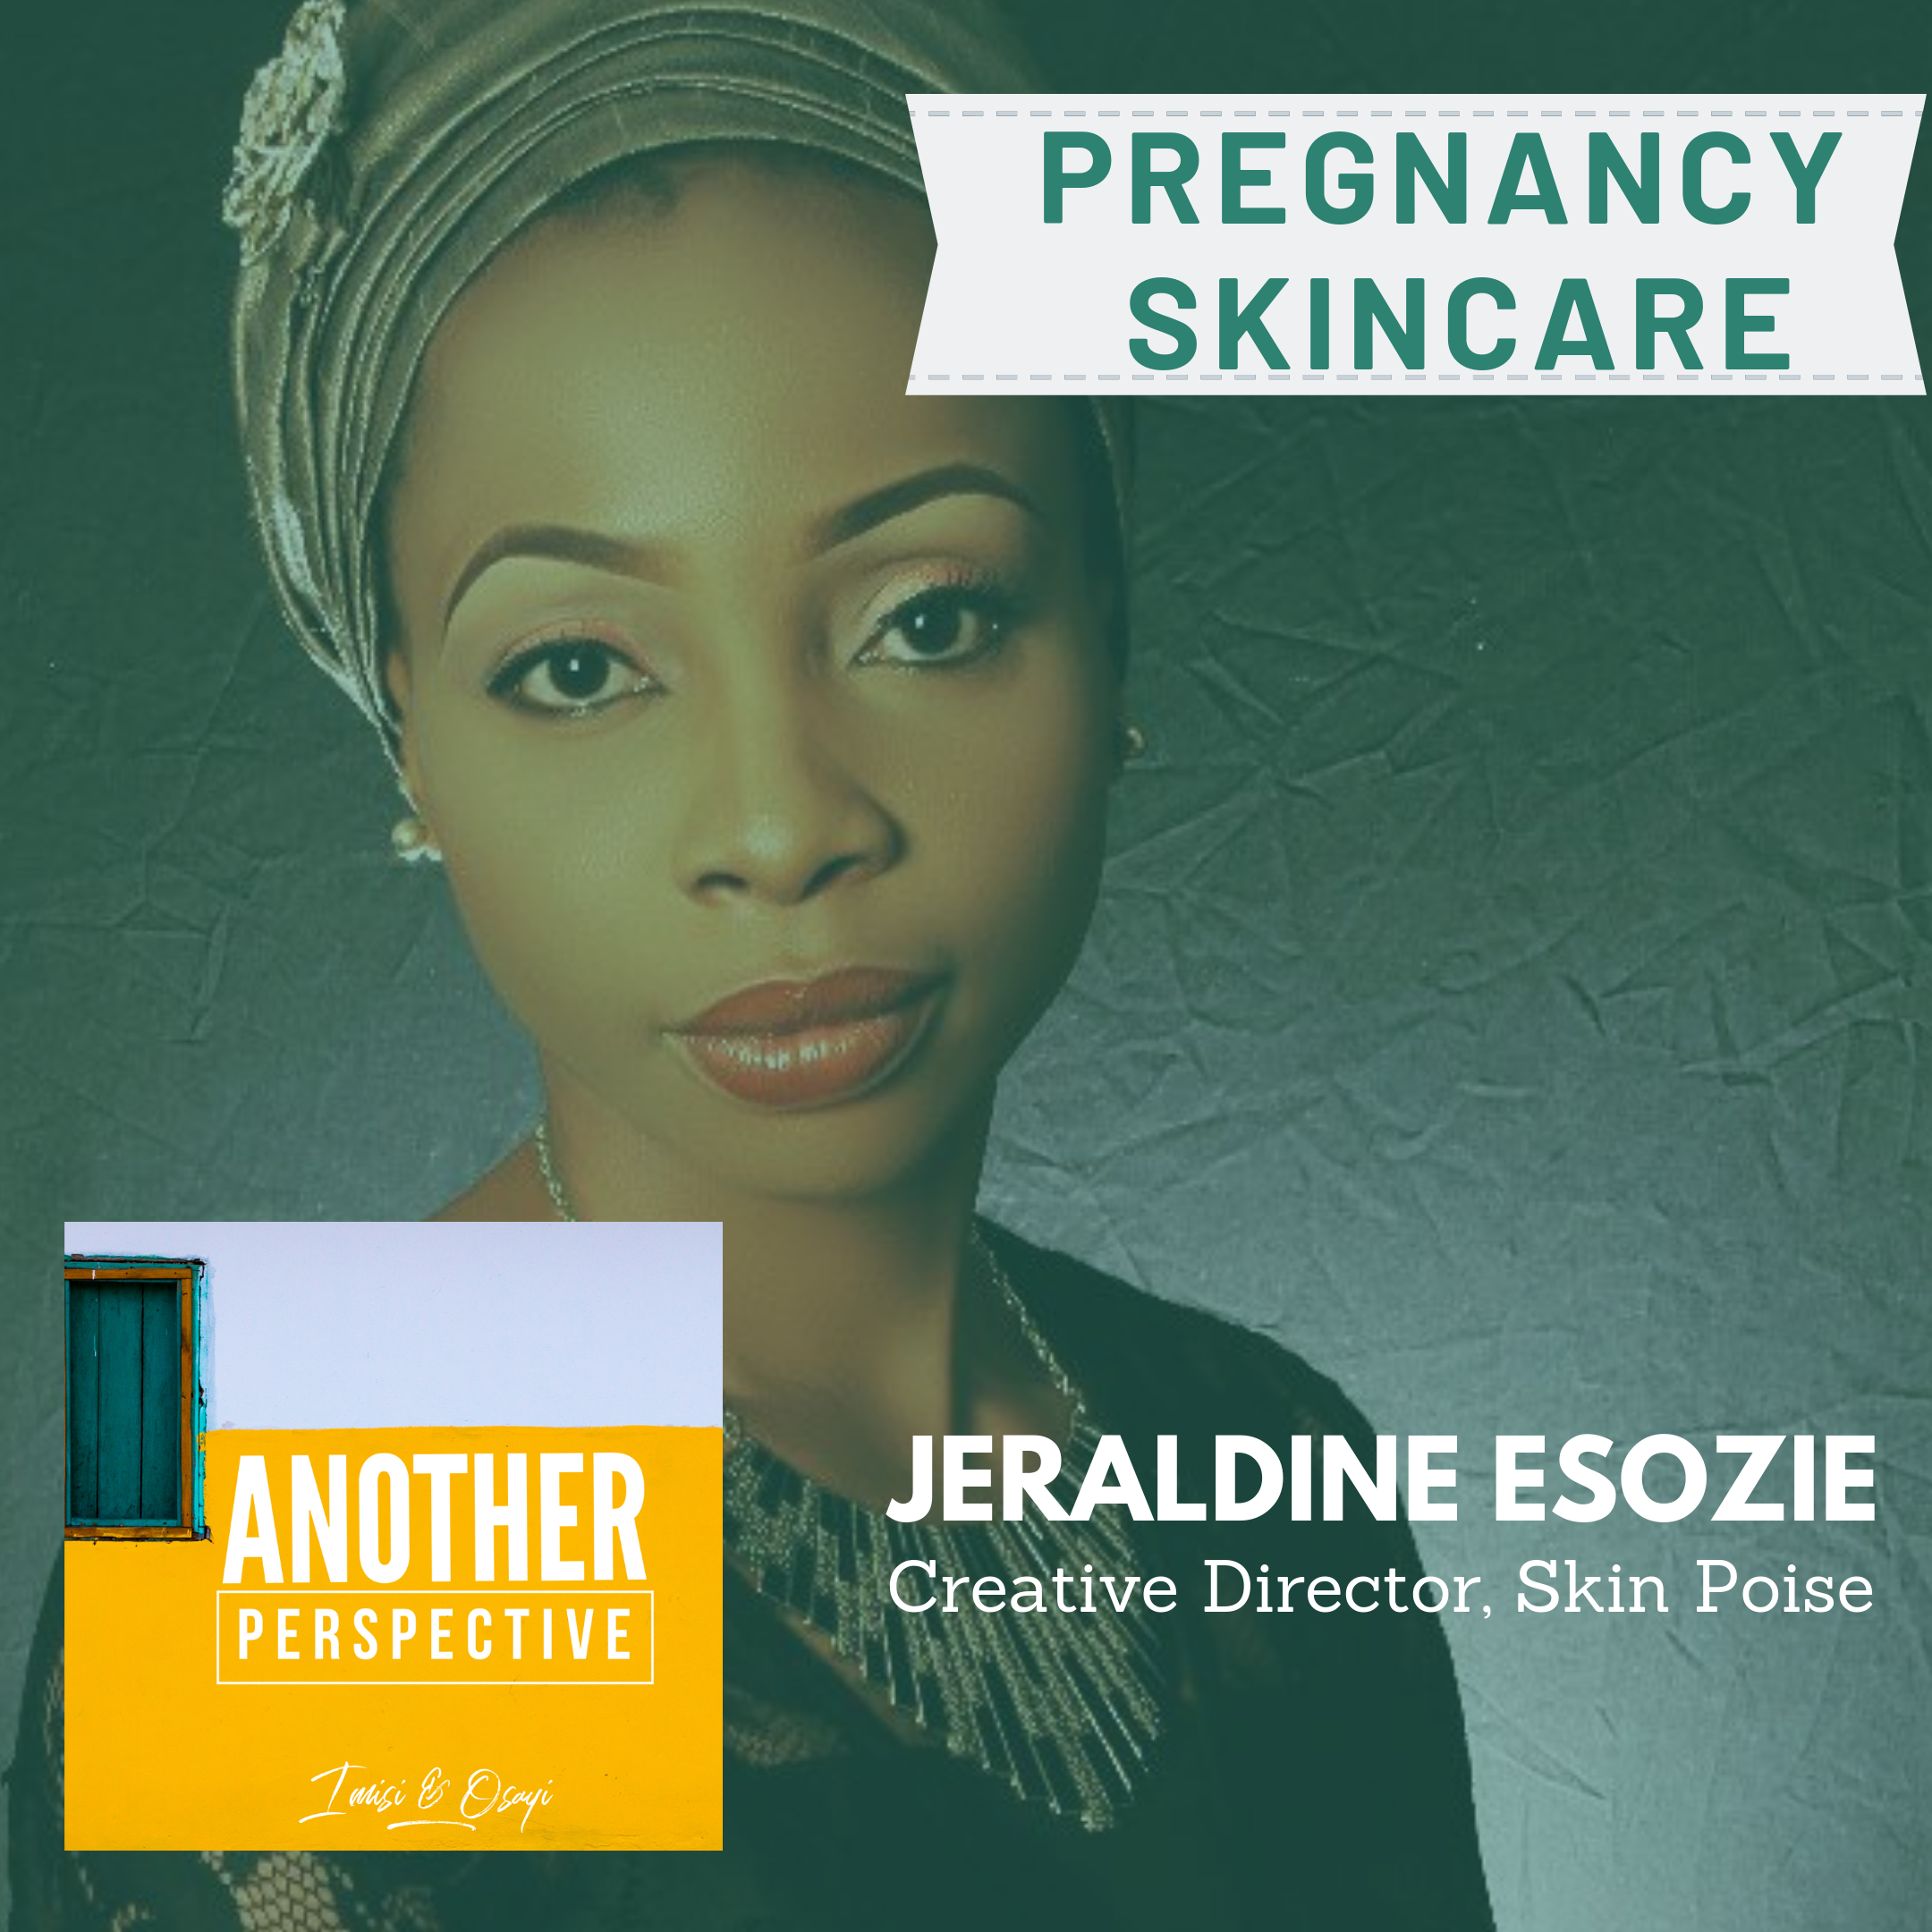 Episode 7a: Another Perspective Podcast – Pregnancy skin care